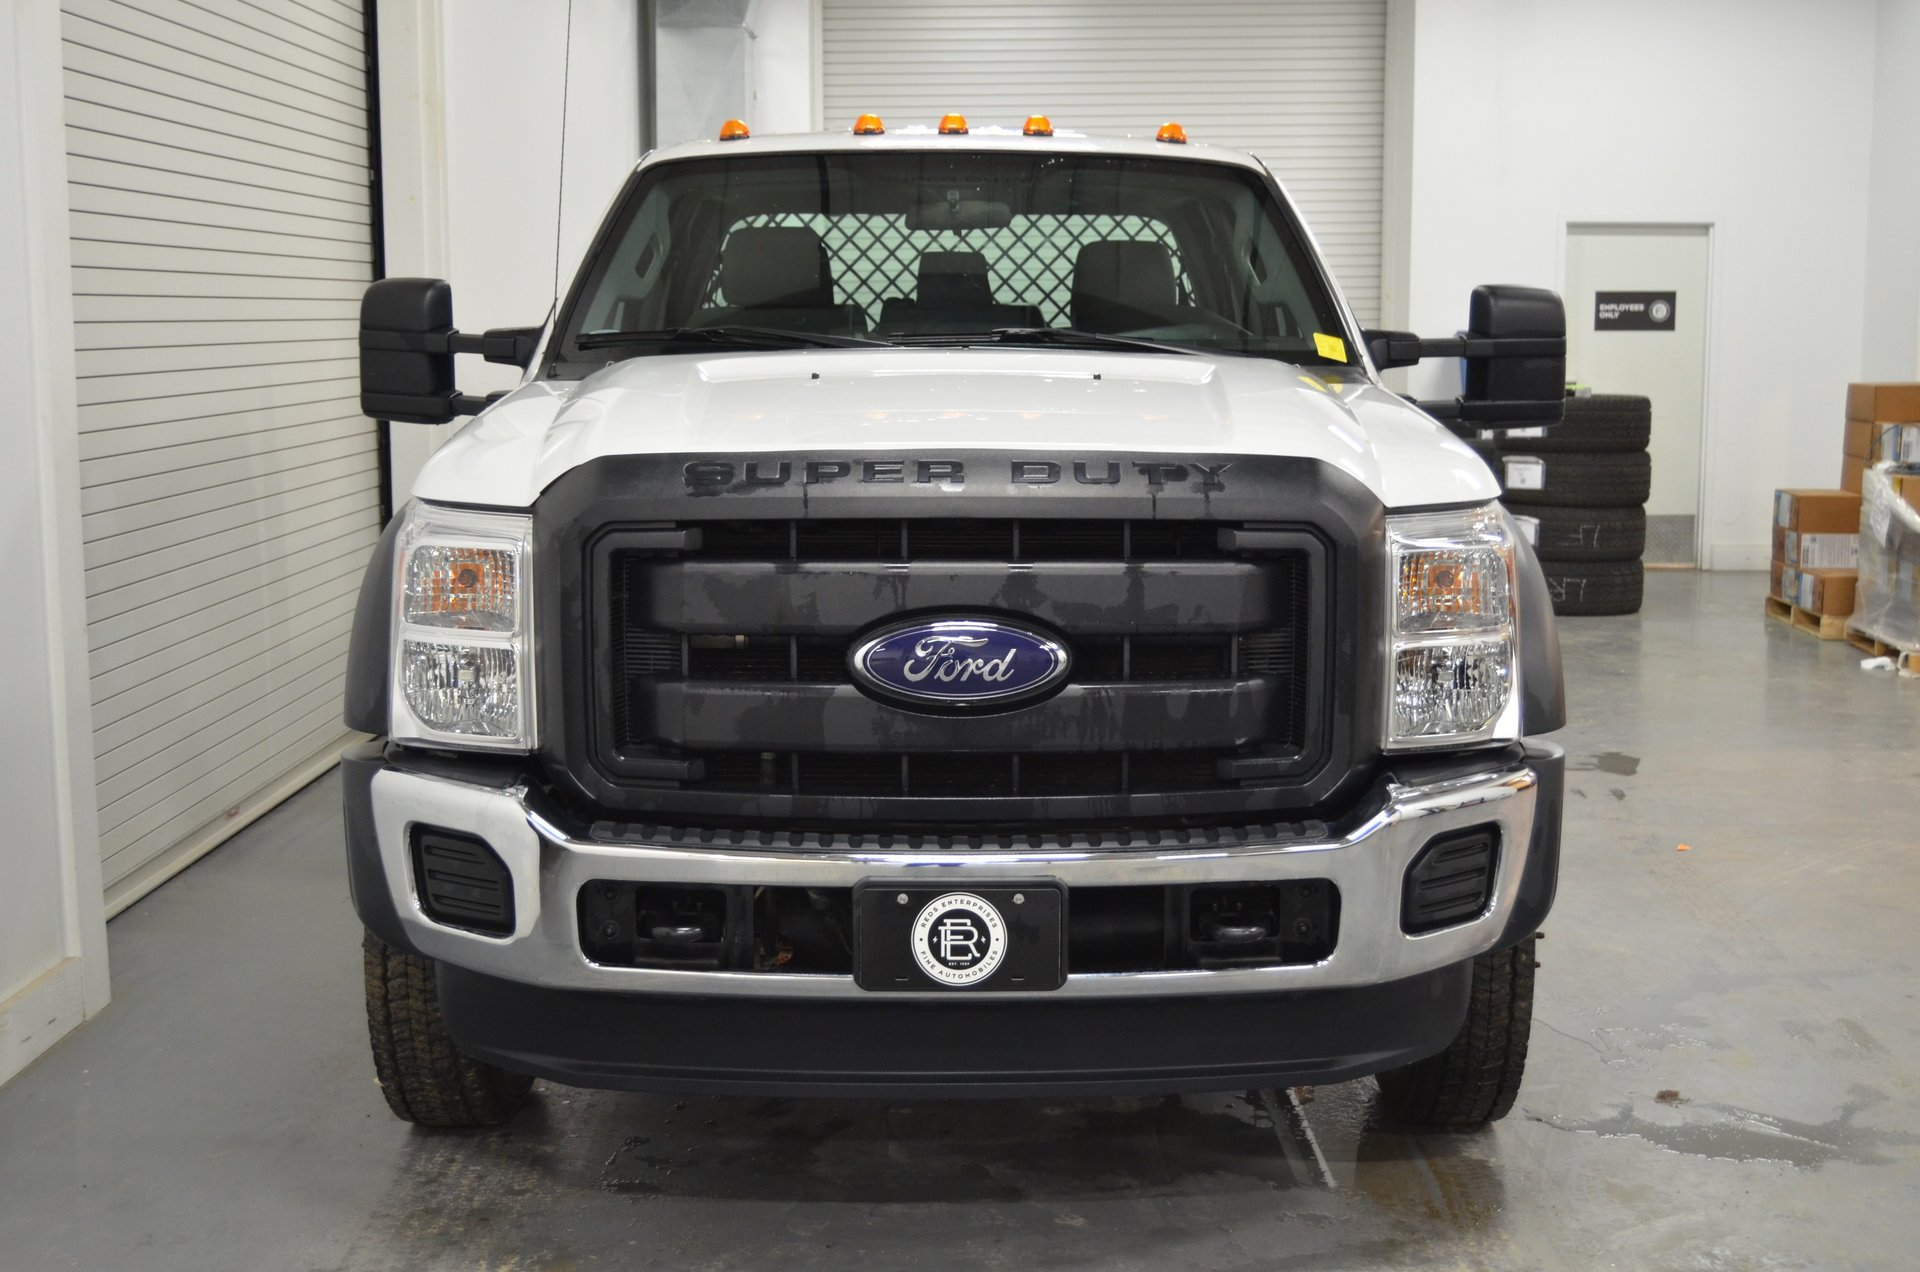 353776128c2a_hd_2016-ford-f550 Great Description About F450 Vs F550 with Breathtaking Gallery Cars Review